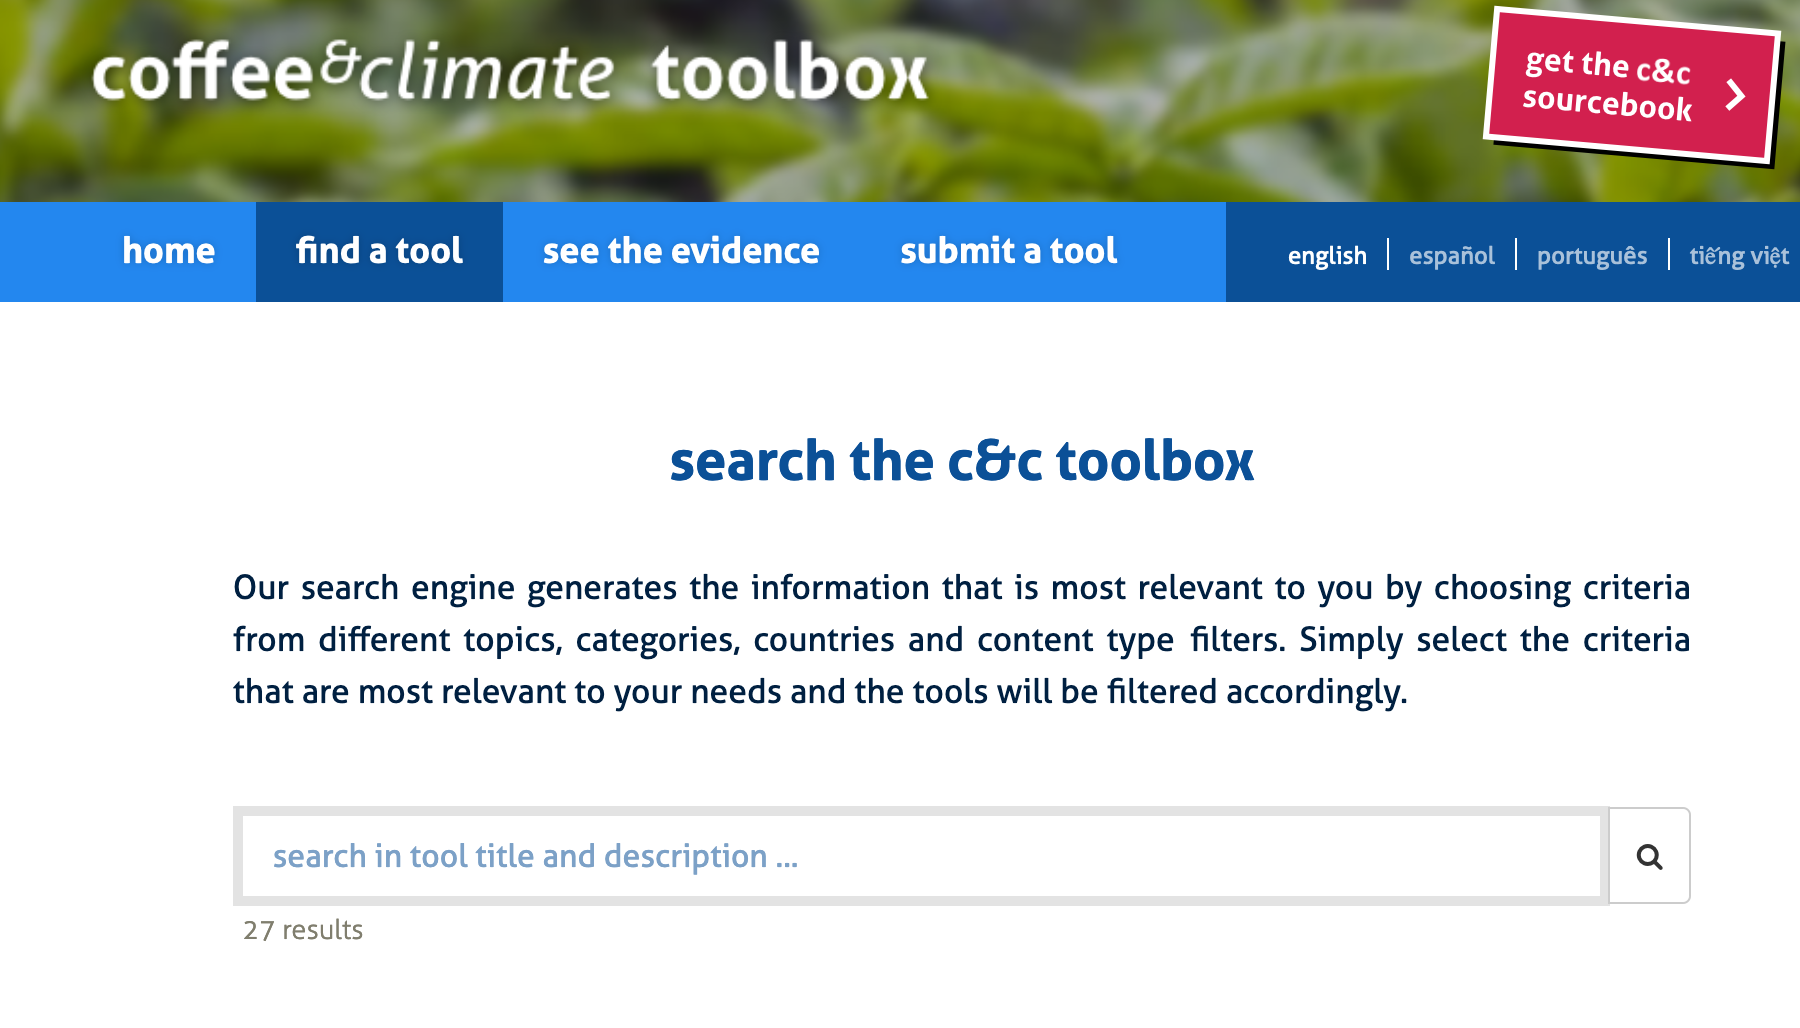 screenshot of the c&c toolbox